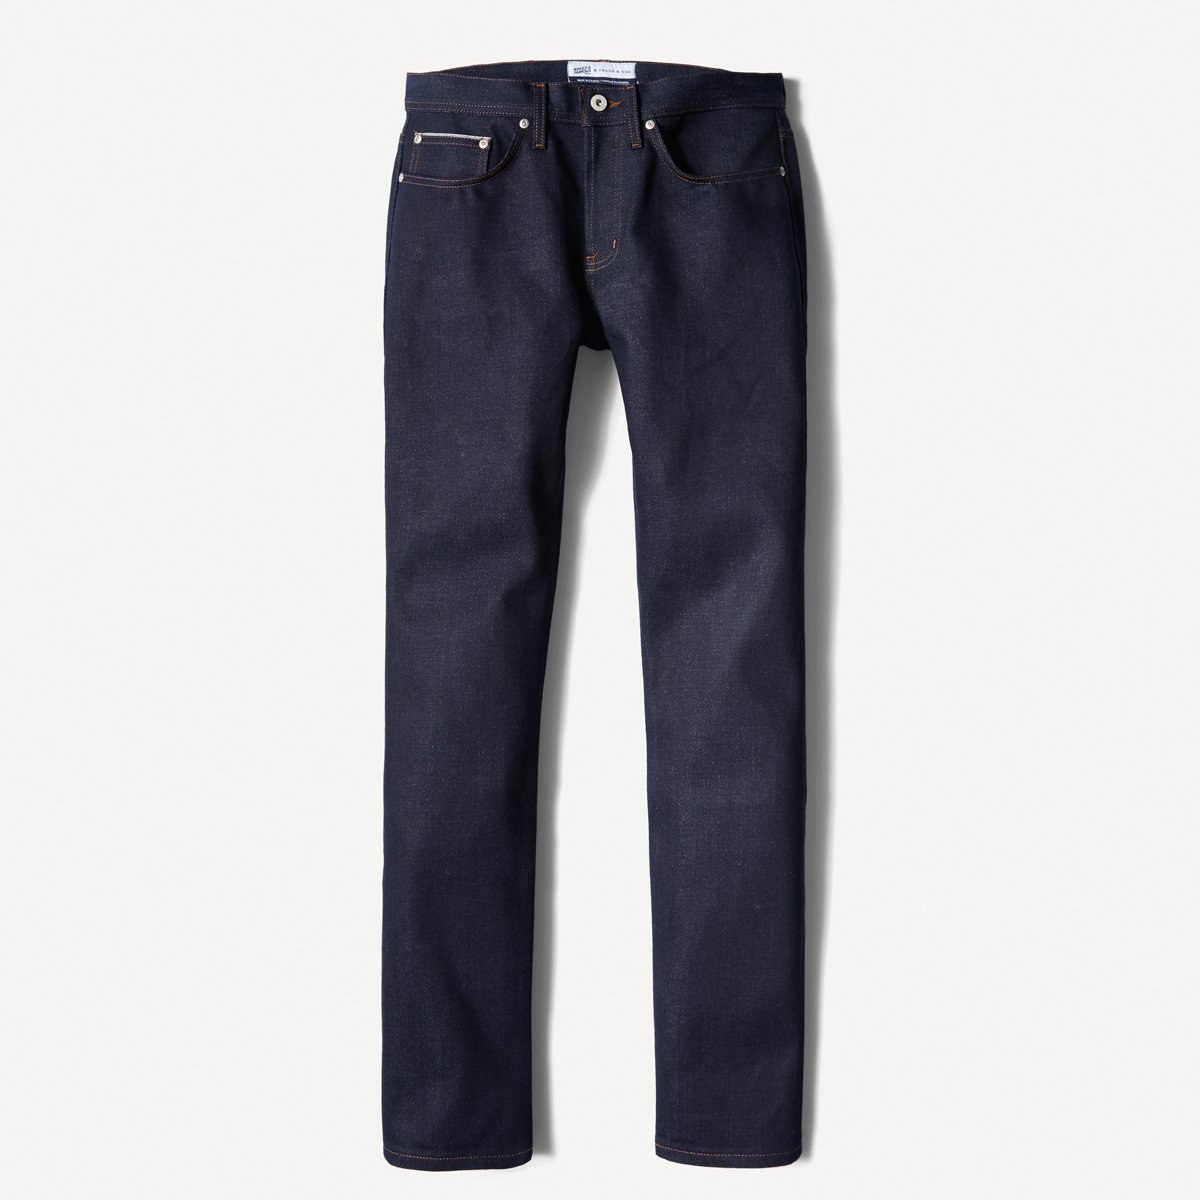 Naked & Famous x Frank & Oak Slim-Straight Selvedge Denim in Indigo